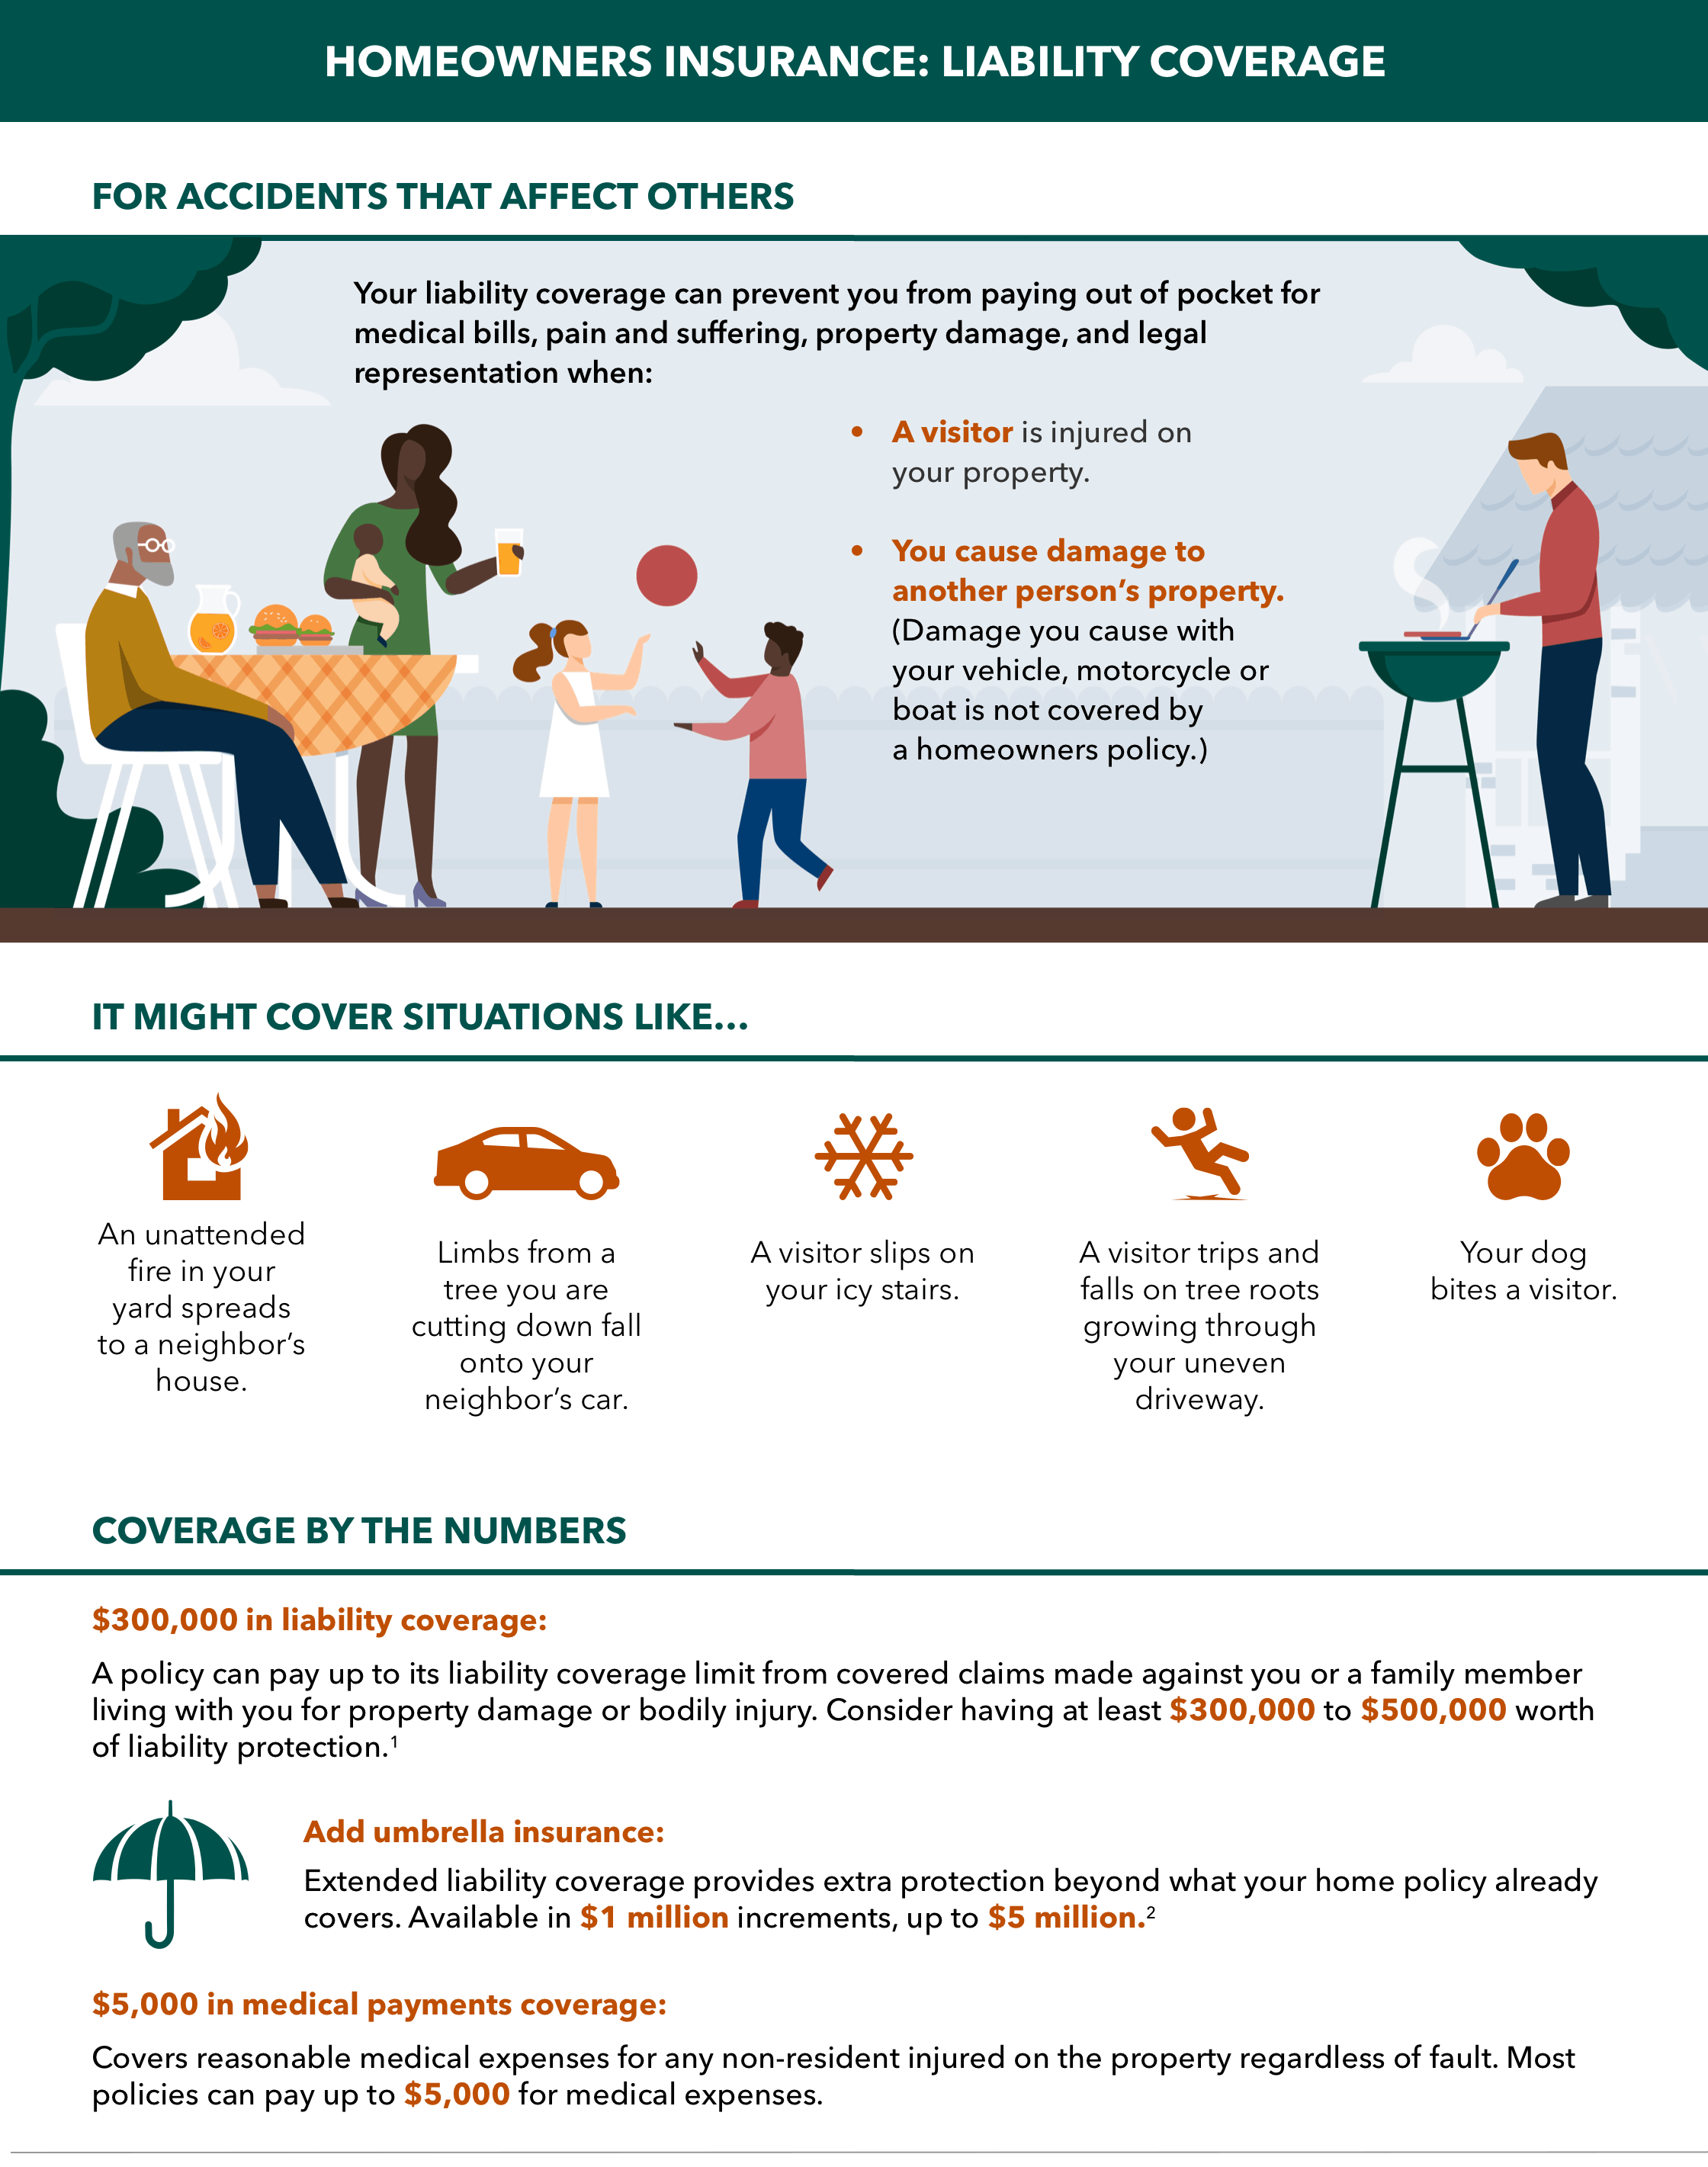 home insurance liability coverage infographic